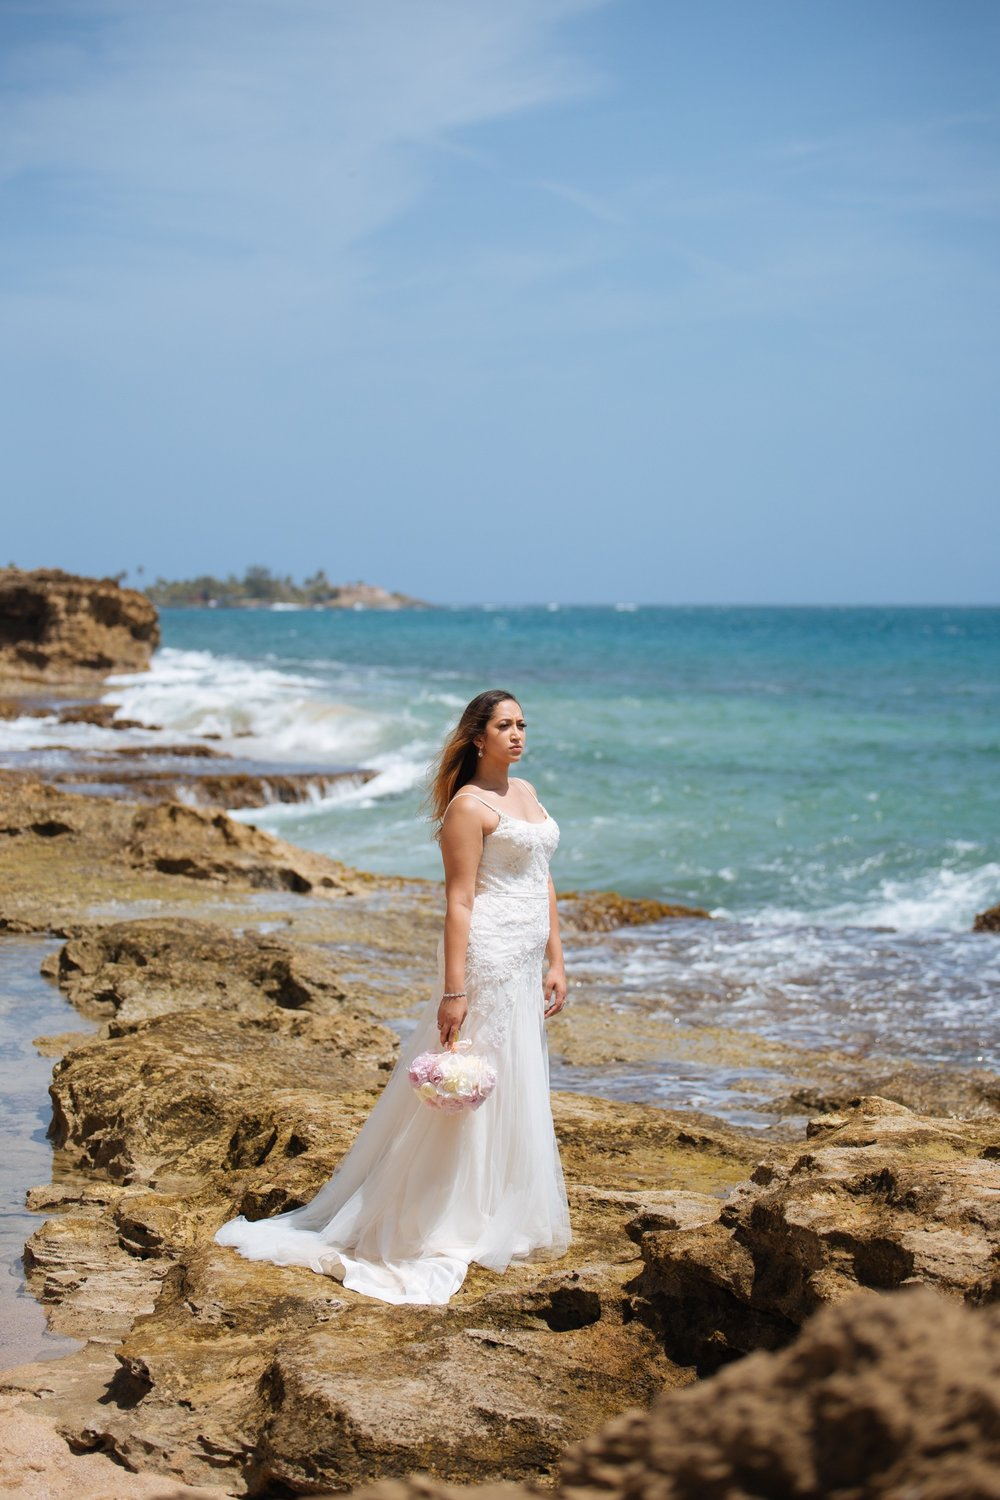 Le Cape Weddings - Destination Wedding in Puerto Rico - Condado Vanderbuilt Wedding -7388.jpg